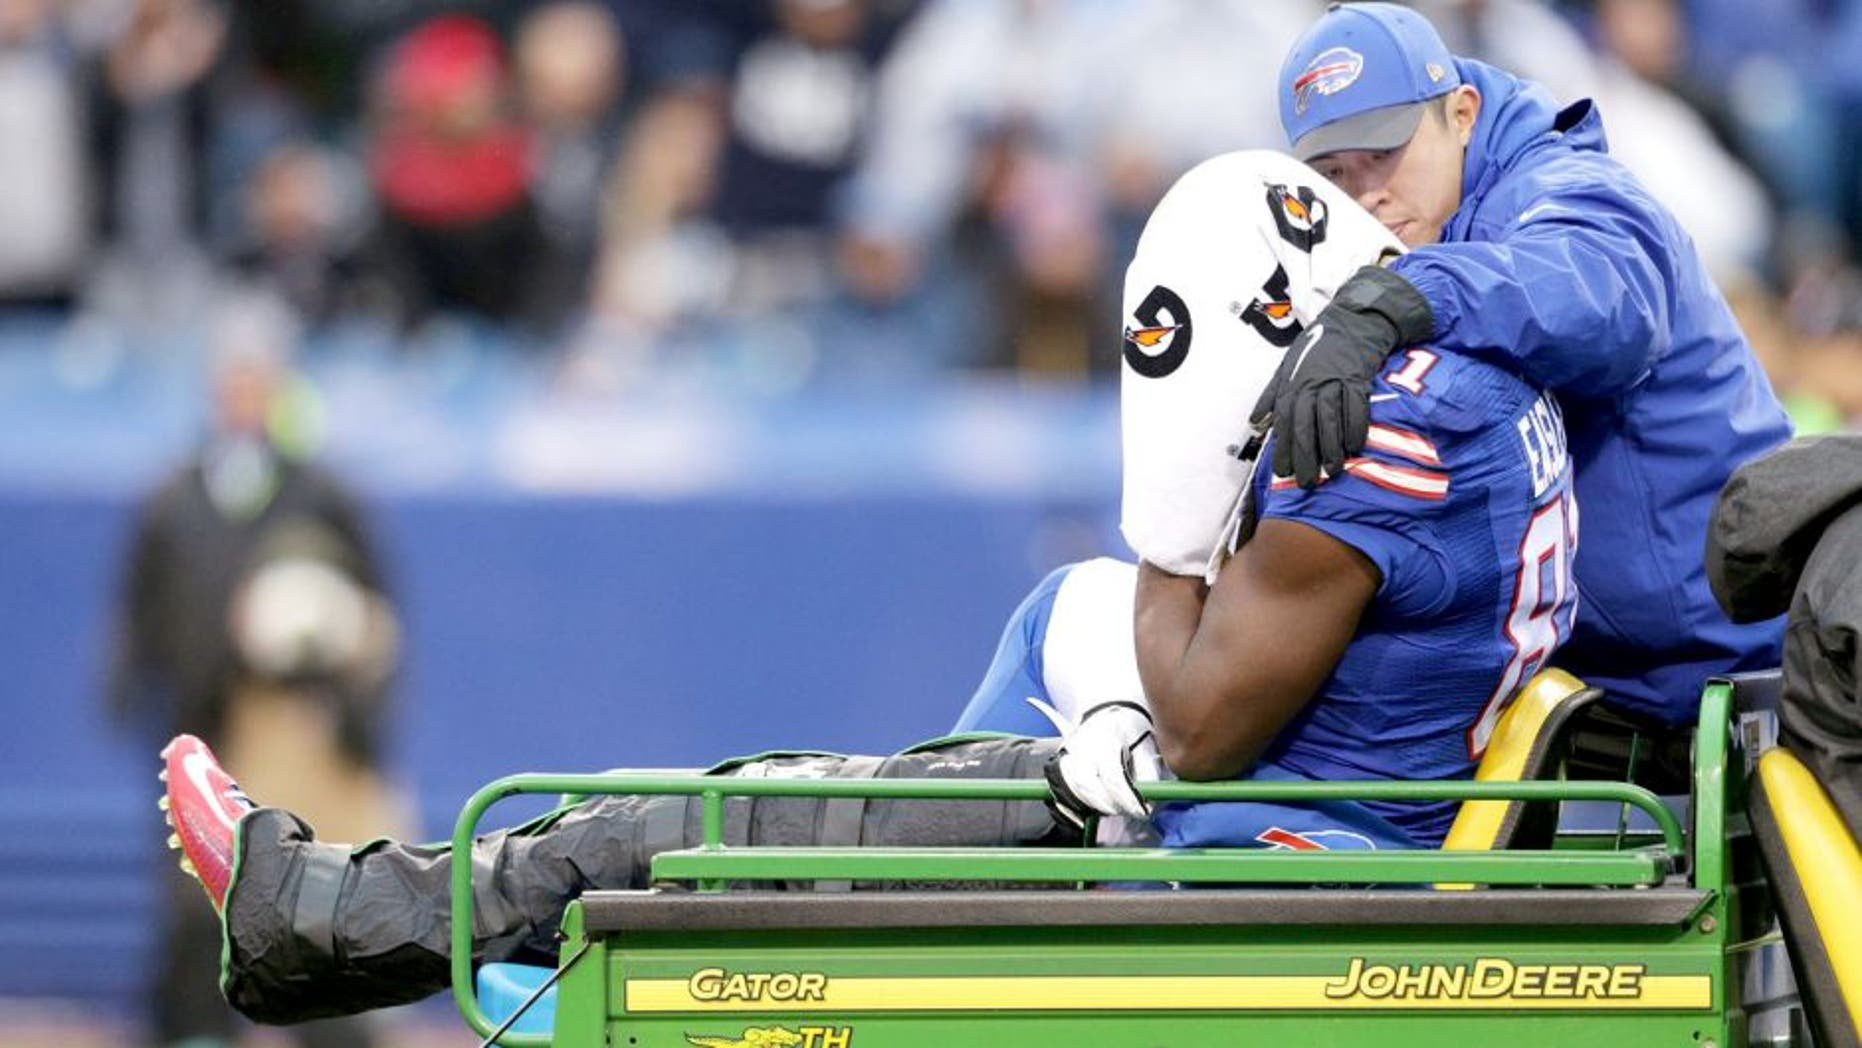 ORCHARD PARK, NY - DECEMBER 27: Marcus Easley #81 of the Buffalo Bills gets carted off the field during the first half against the Dallas Cowboys at Ralph Wilson Stadium on December 27, 2015 in Orchard Park, New York. (Photo by Brett Carlsen/Getty Images)